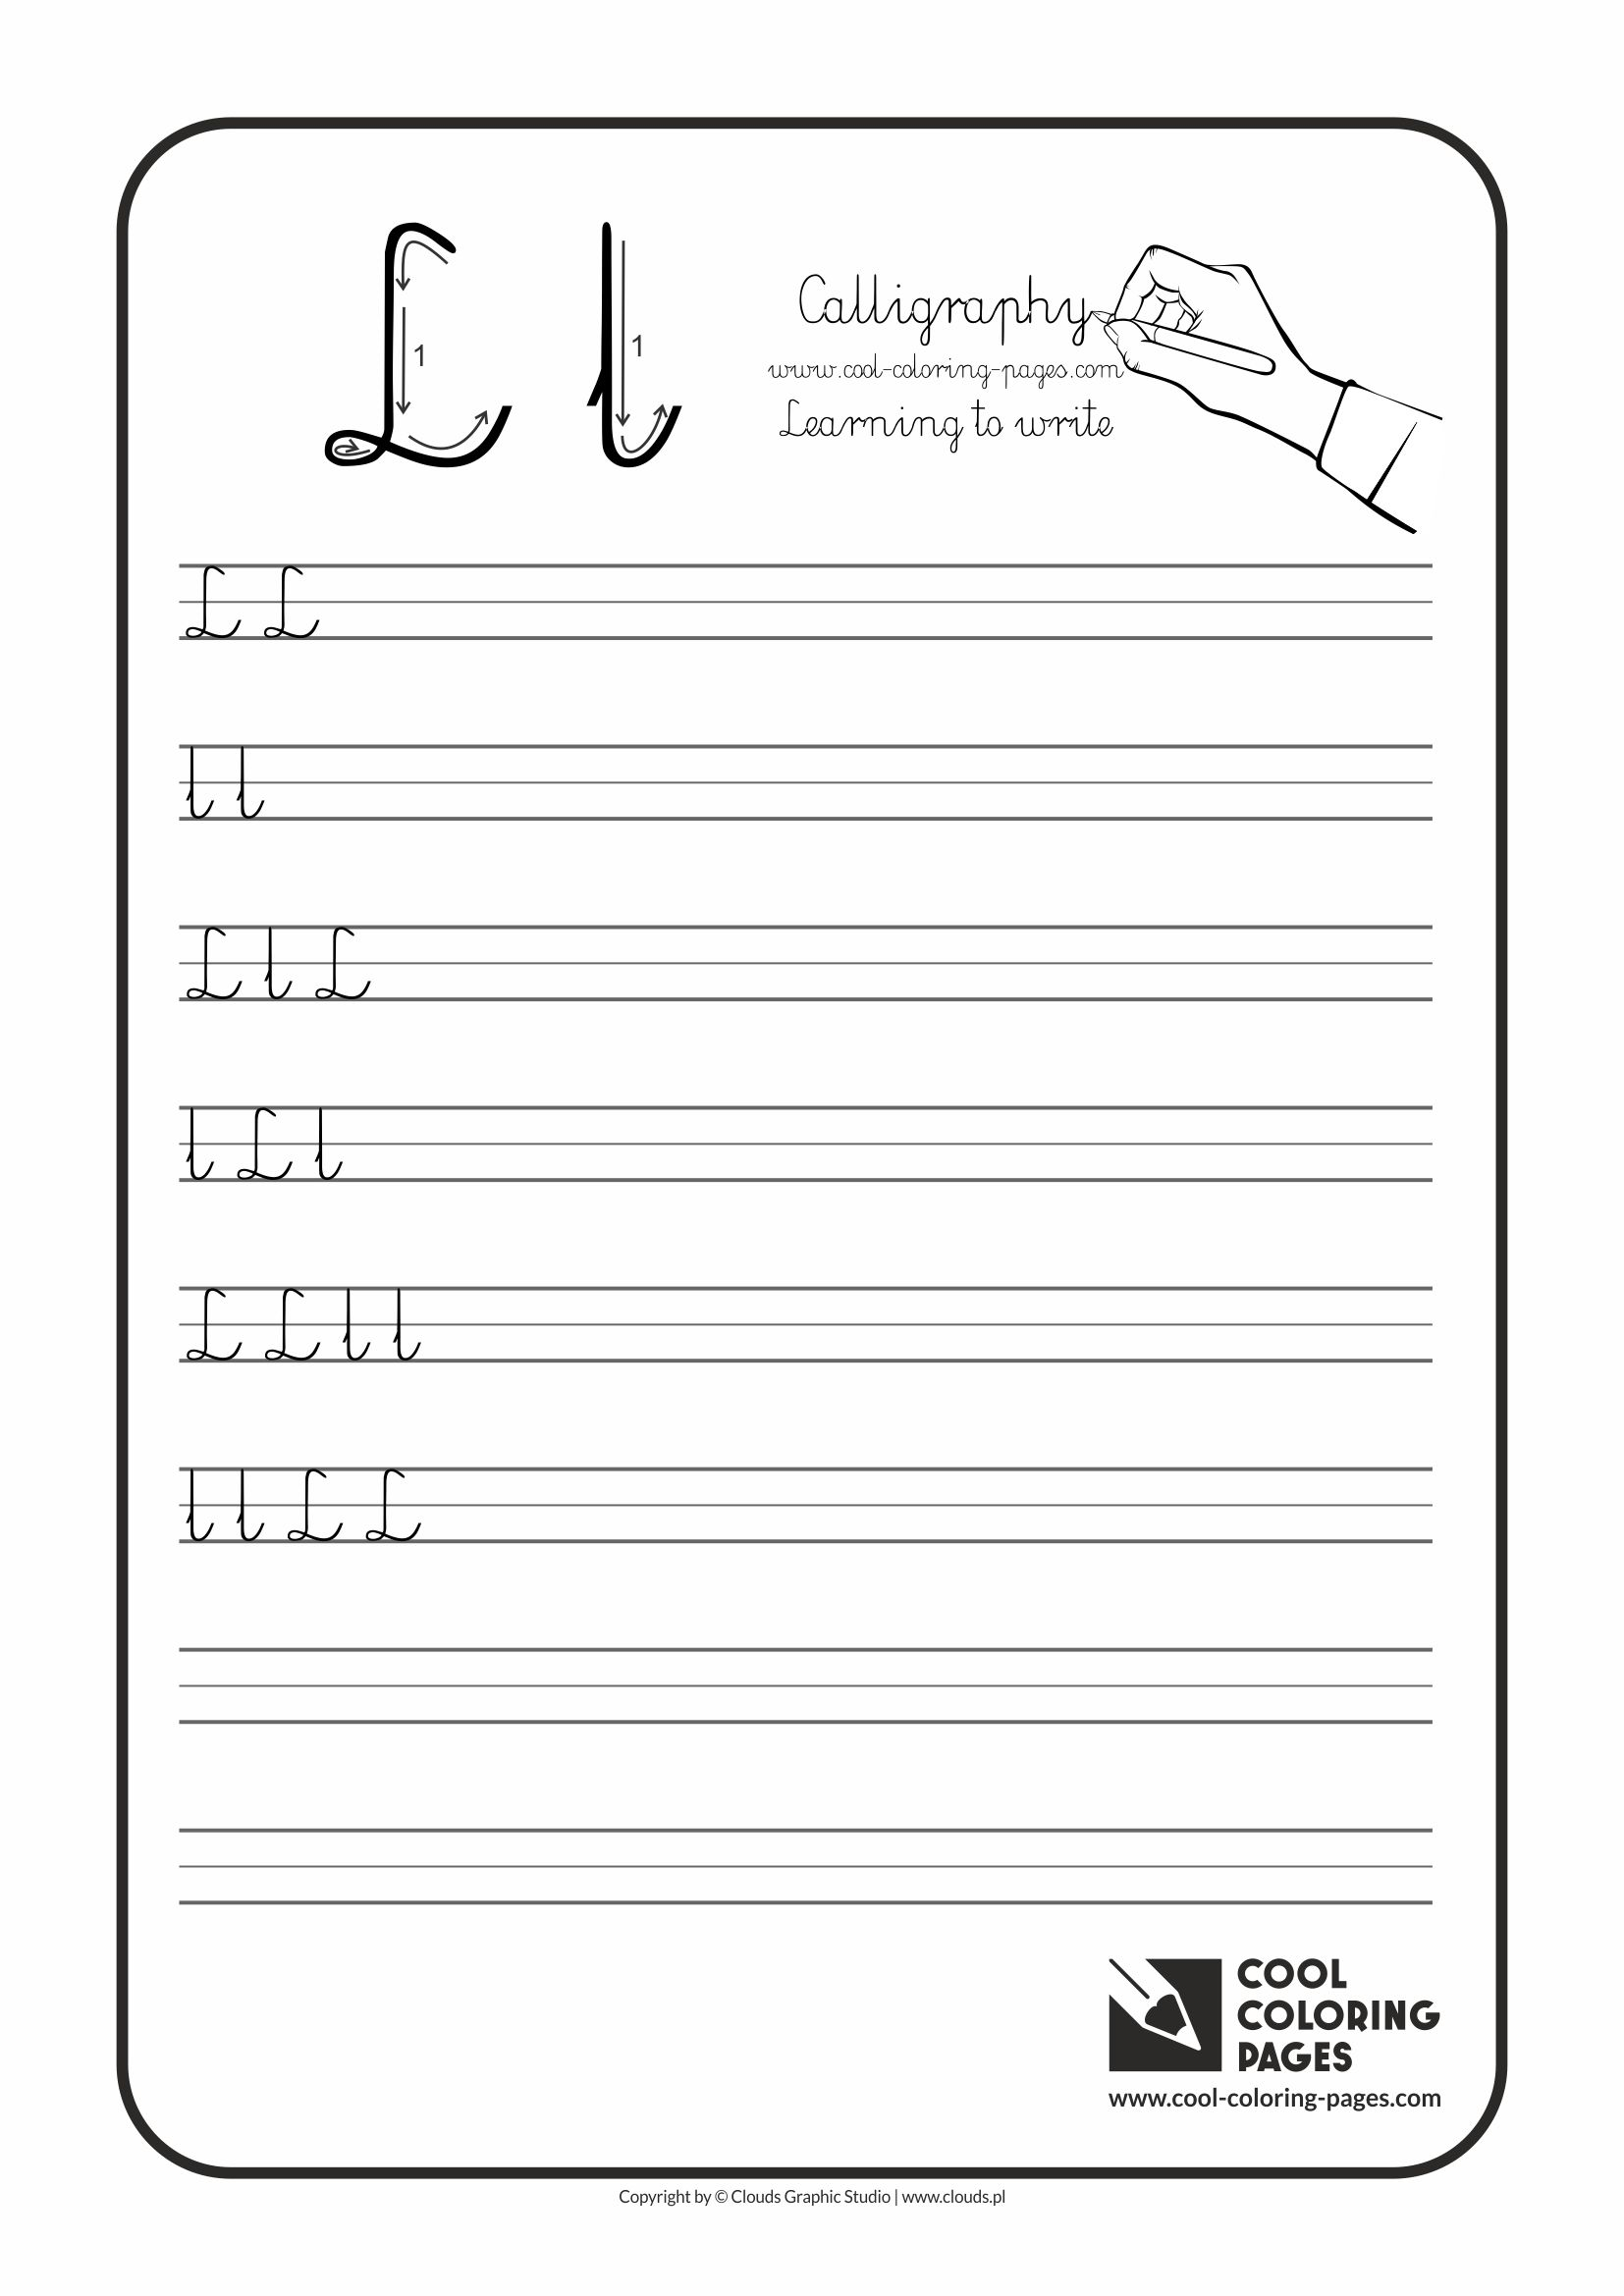 Calligraphy Handwriting Worksheets : Cool coloring pages calligraphy for kids letters